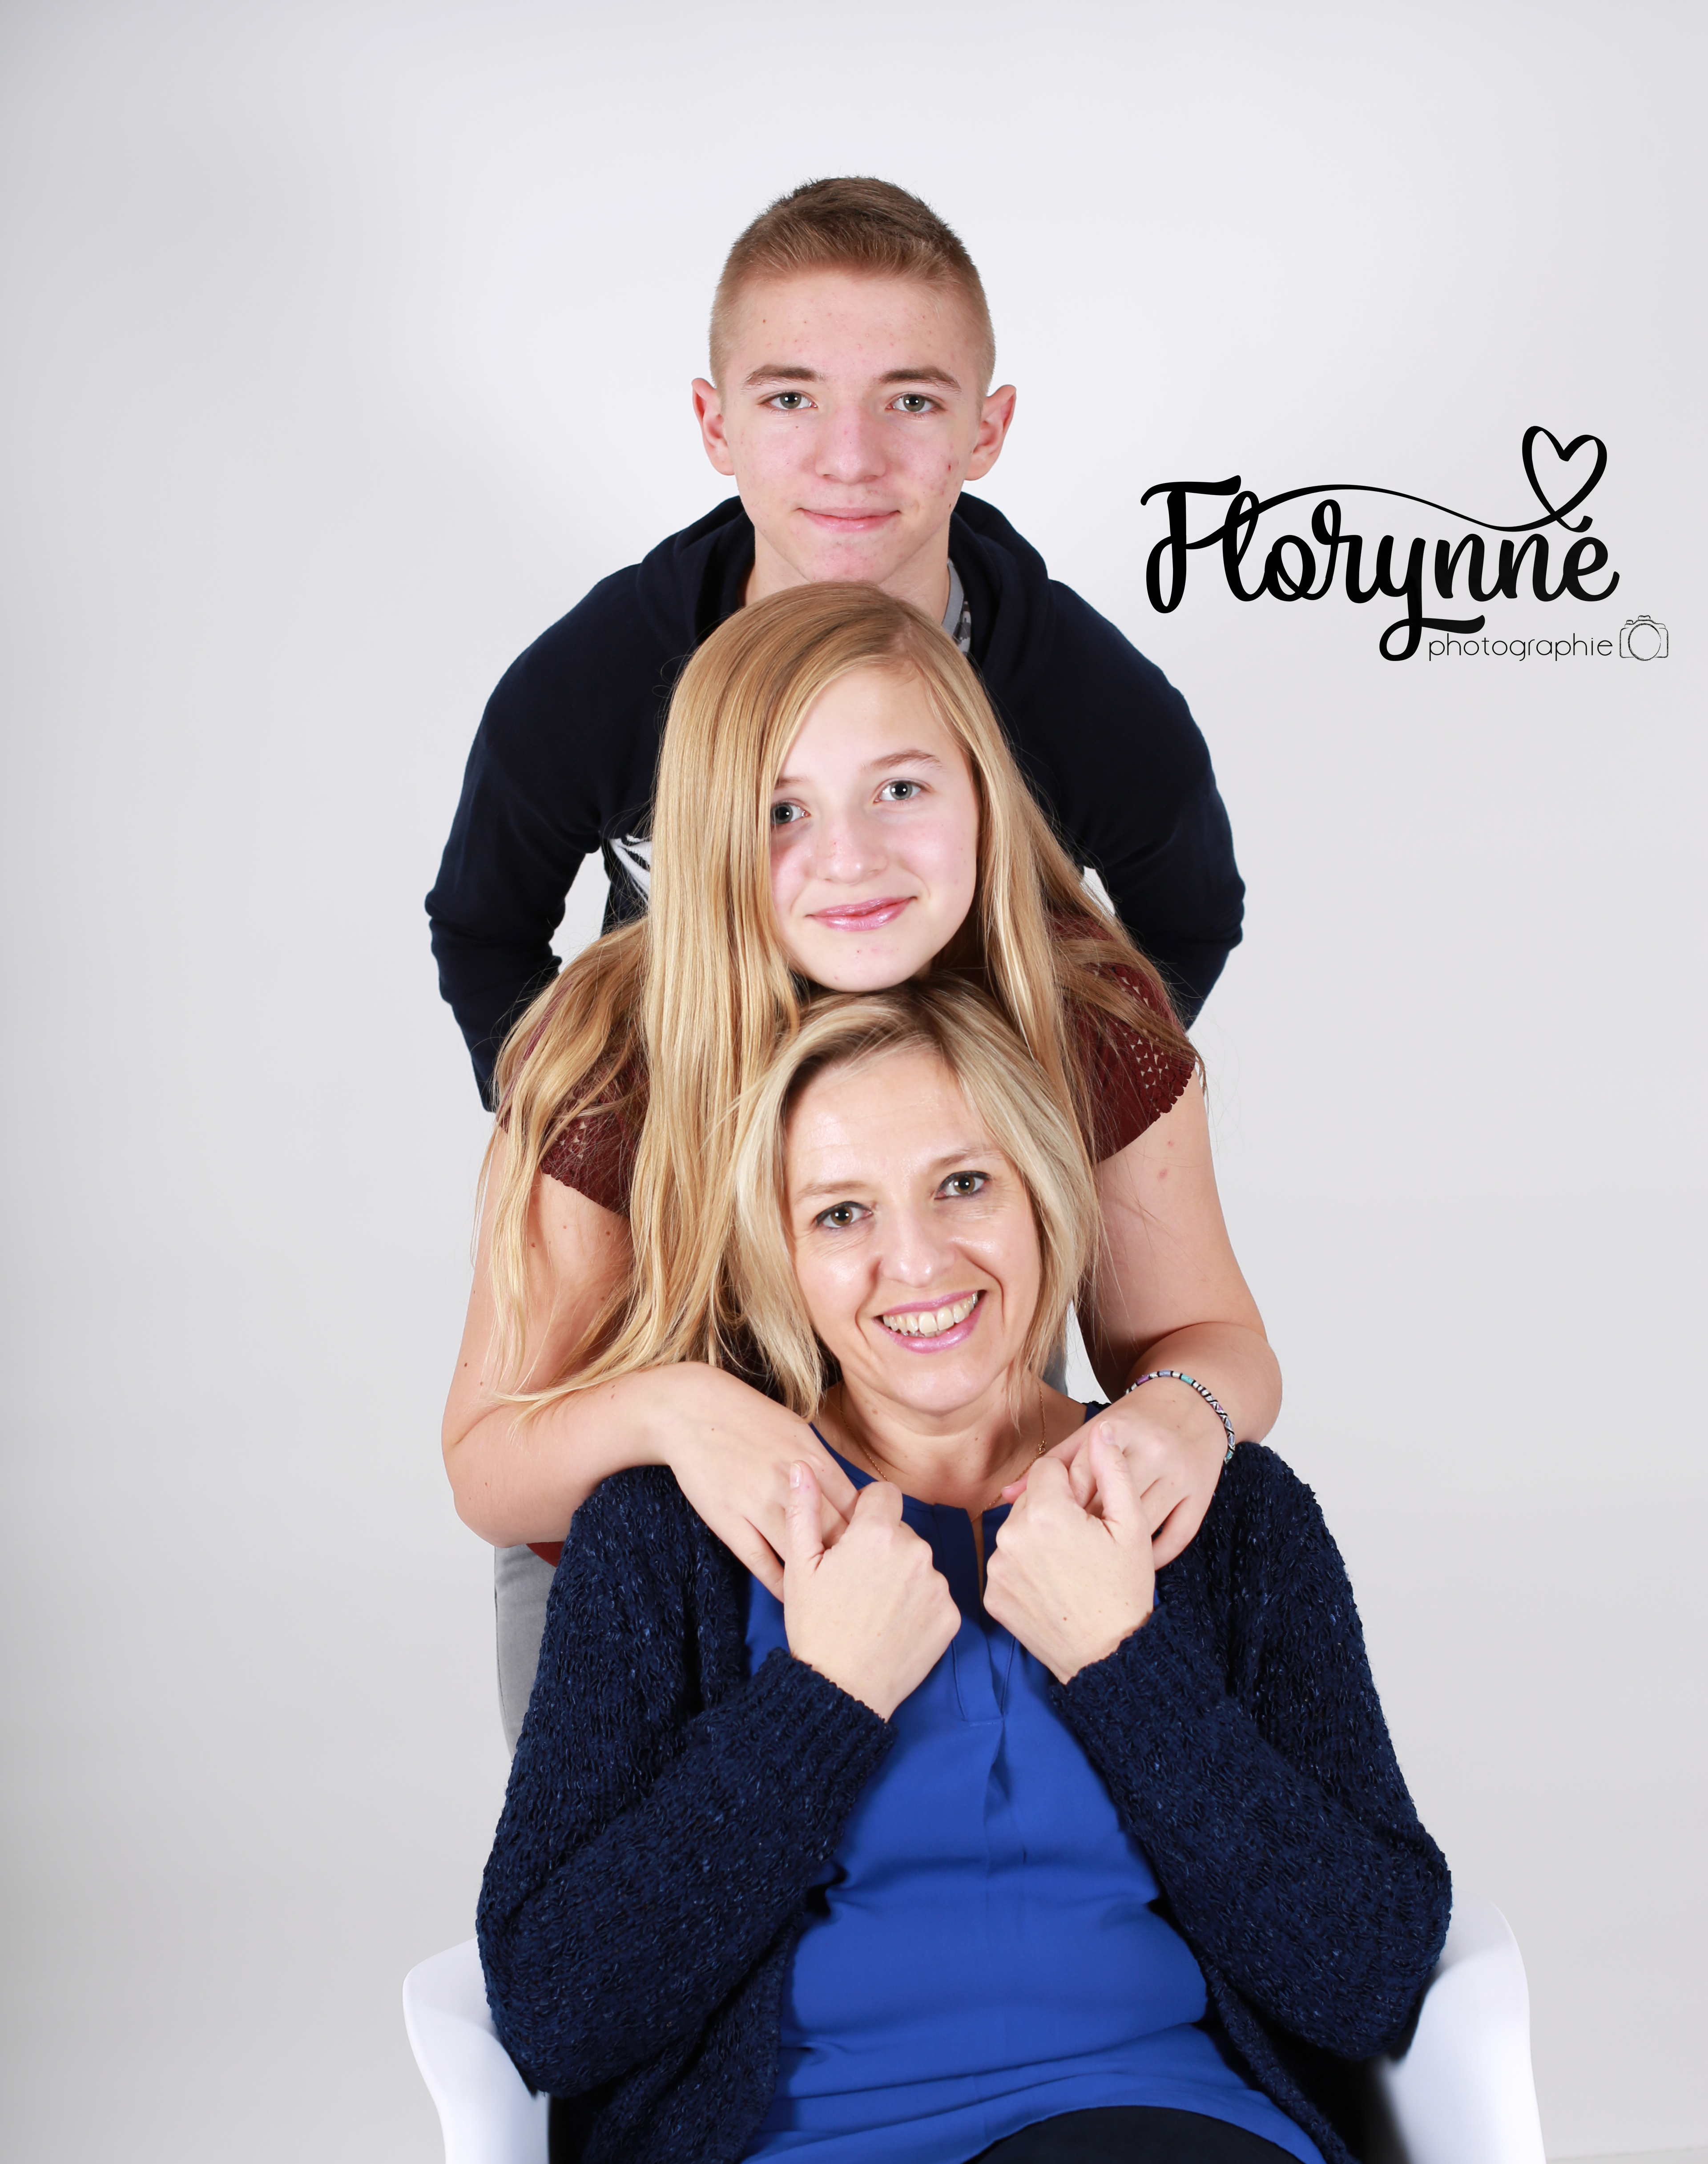 Famille - Florynne photographie